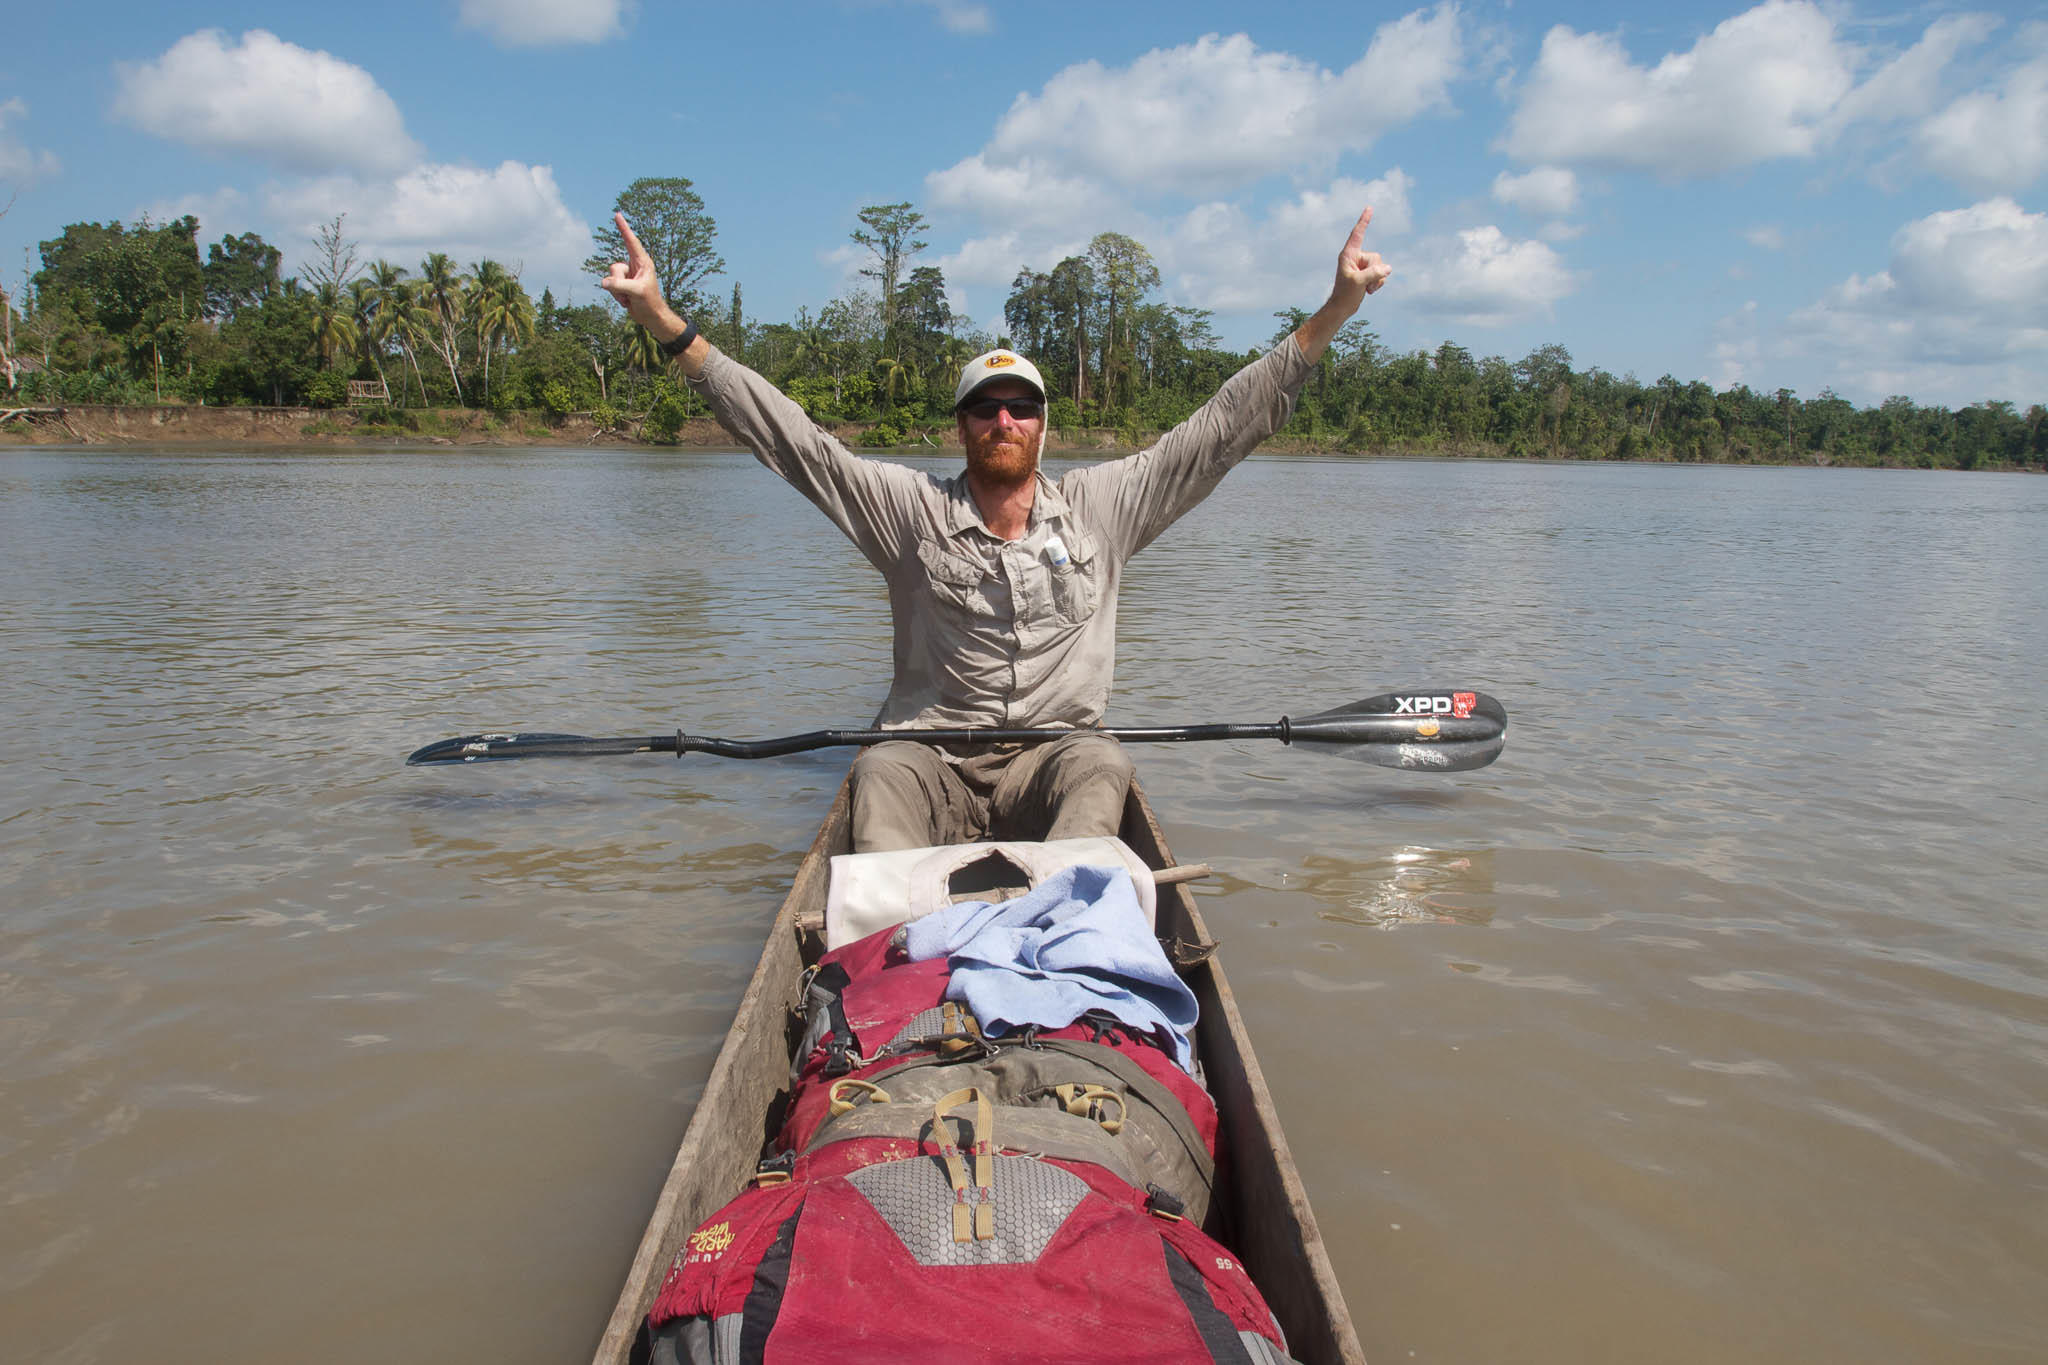 A frontal shot landscape photo of a man in a canoe raising his arms as a sign of victory. It is Andrew Johnson on the Sepik River in Papua New Guinea. He is wearing a Visor® Buff® as legionnaire style cap. The scene looks hot & humid. Image taken during the first spring to sea traverse of the Sepik River in Papua New Guinea. Source: Clark Carter © Clark Carter. https://www.adventureplaybook.com/ permission to use on our websites